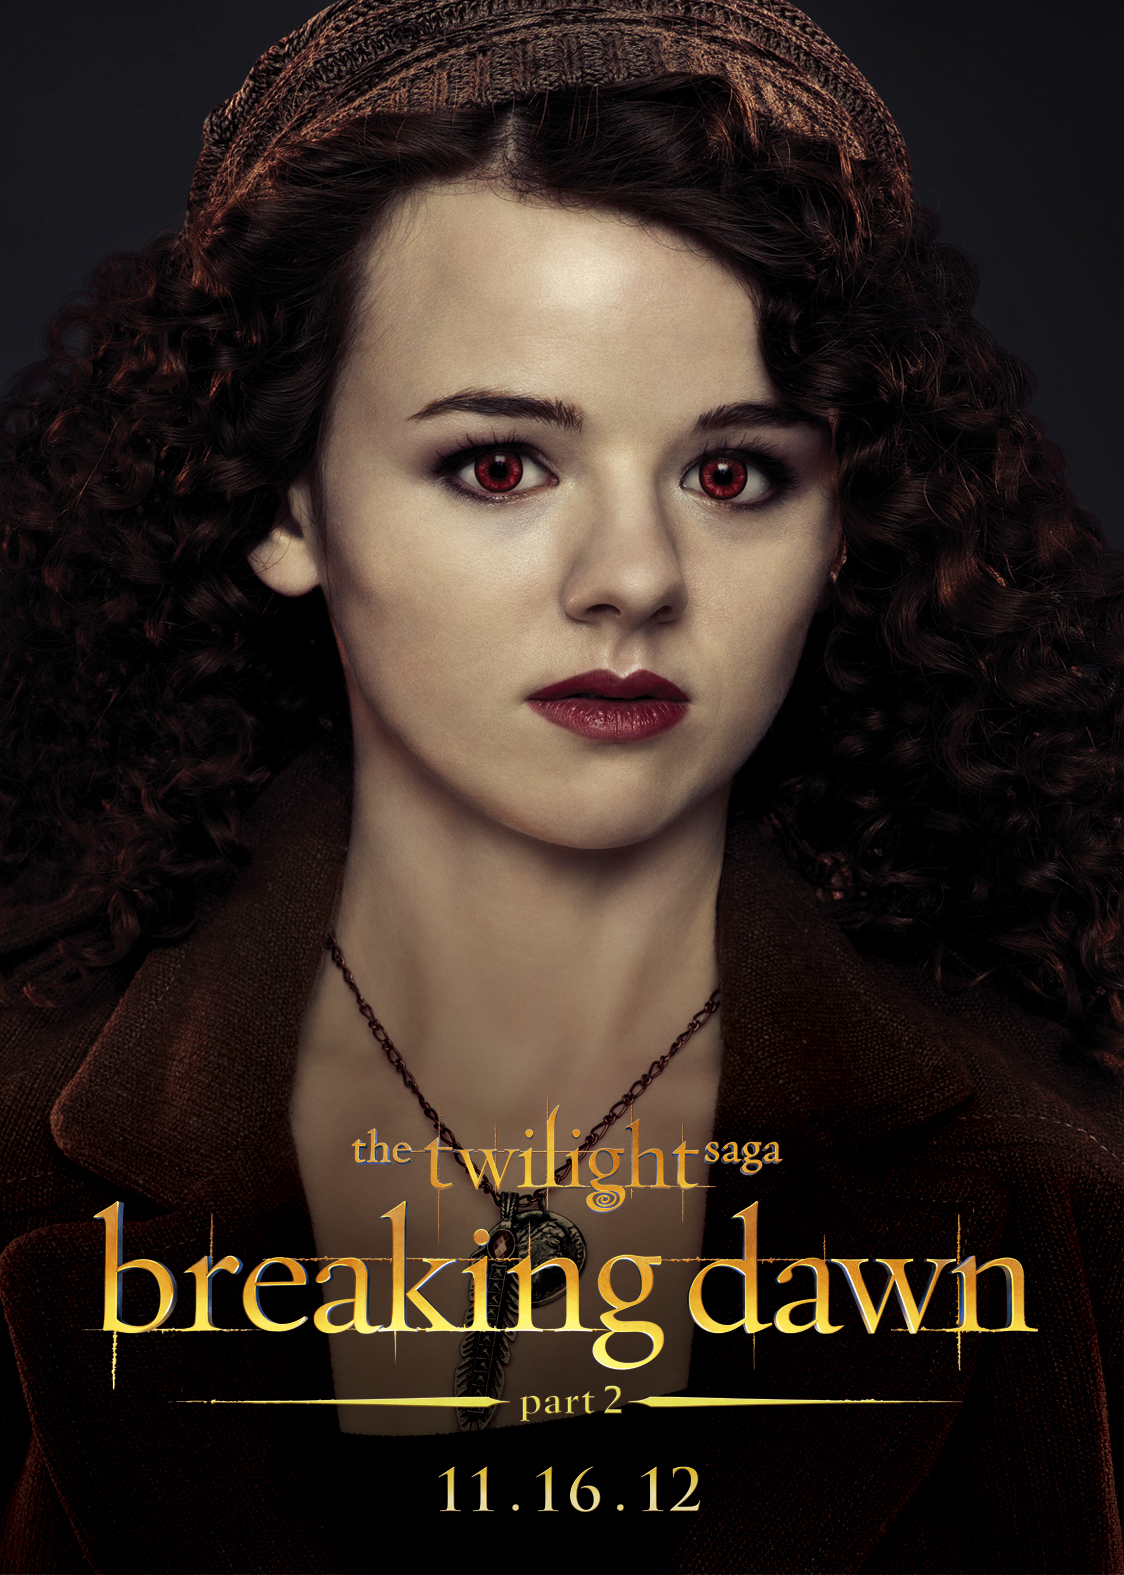 http://4.bp.blogspot.com/-W6NbP9dTx6w/UKfjTtXi05I/AAAAAAAAEgA/LbPoB39DDAw/s1600/the-twilight-saga-breaking-dawn-part-2-maggie.jpg